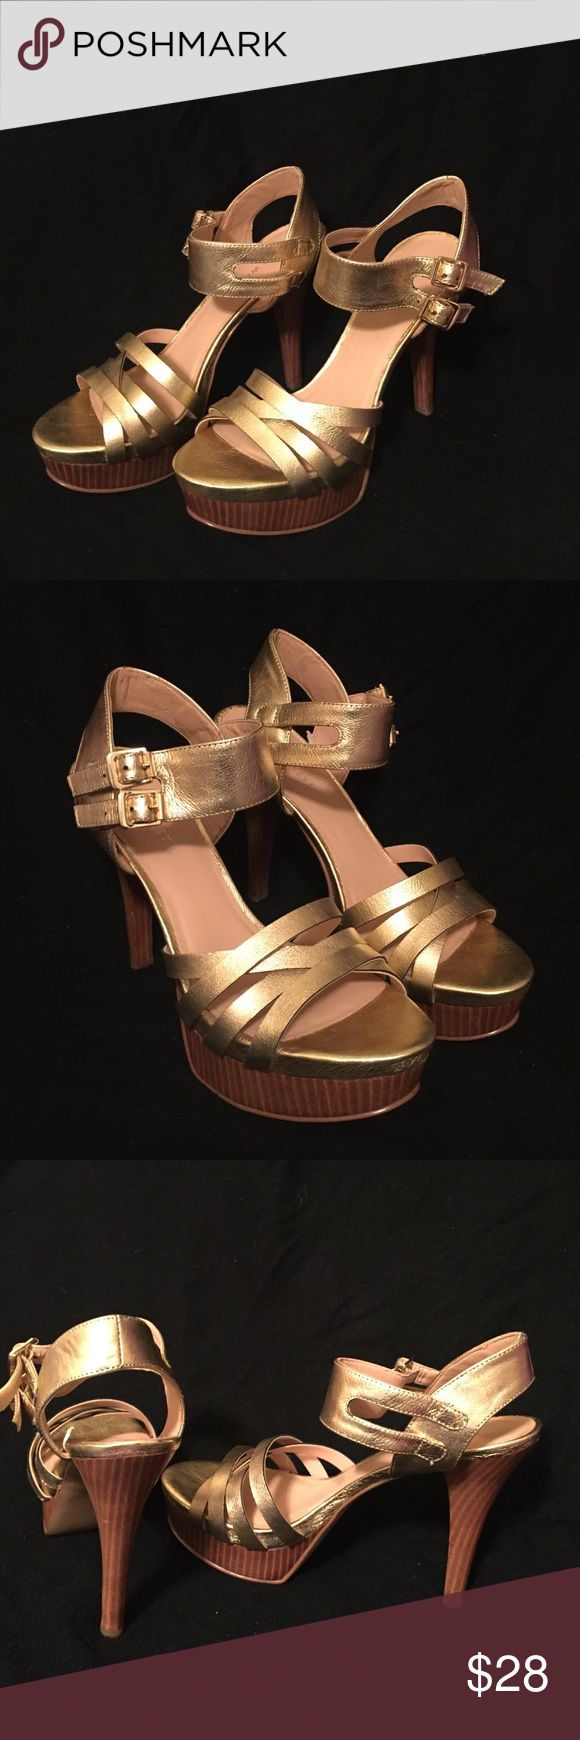 🌼🌸🌺Nine West Sandal Heel🌼🌸🌺 Absolutely beautiful Gold Sandal Heels!!!  They are in excellent condition!!! Nine West Shoes